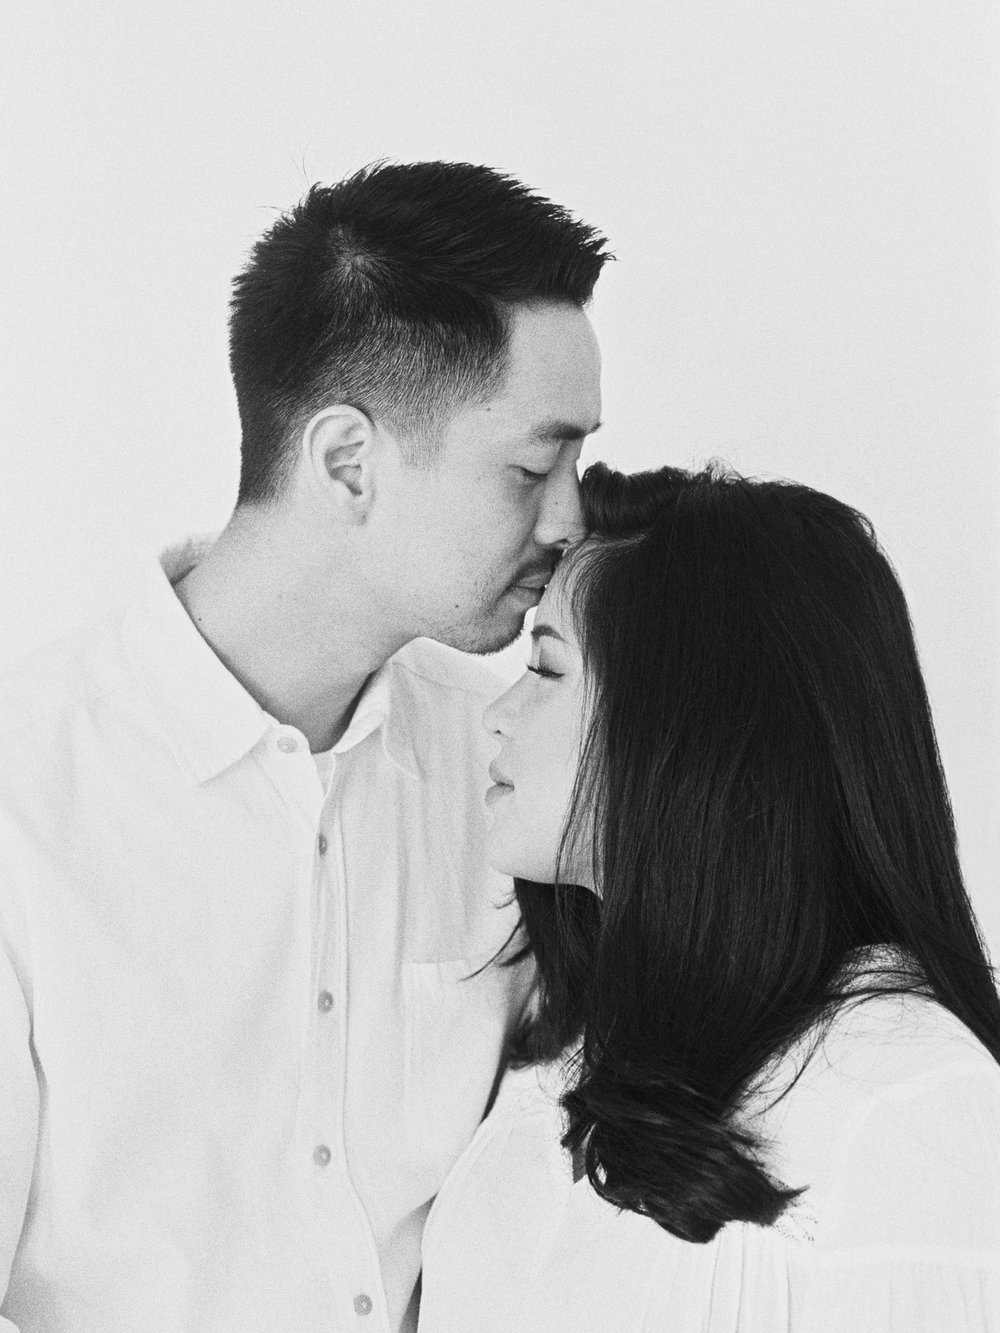 Gaby and Tim-Relaxed-Airy-Simple-Maternity Portrait Photoshoot-At Home-Jakarta-Studio June-Film Photography & Styling-40.jpg